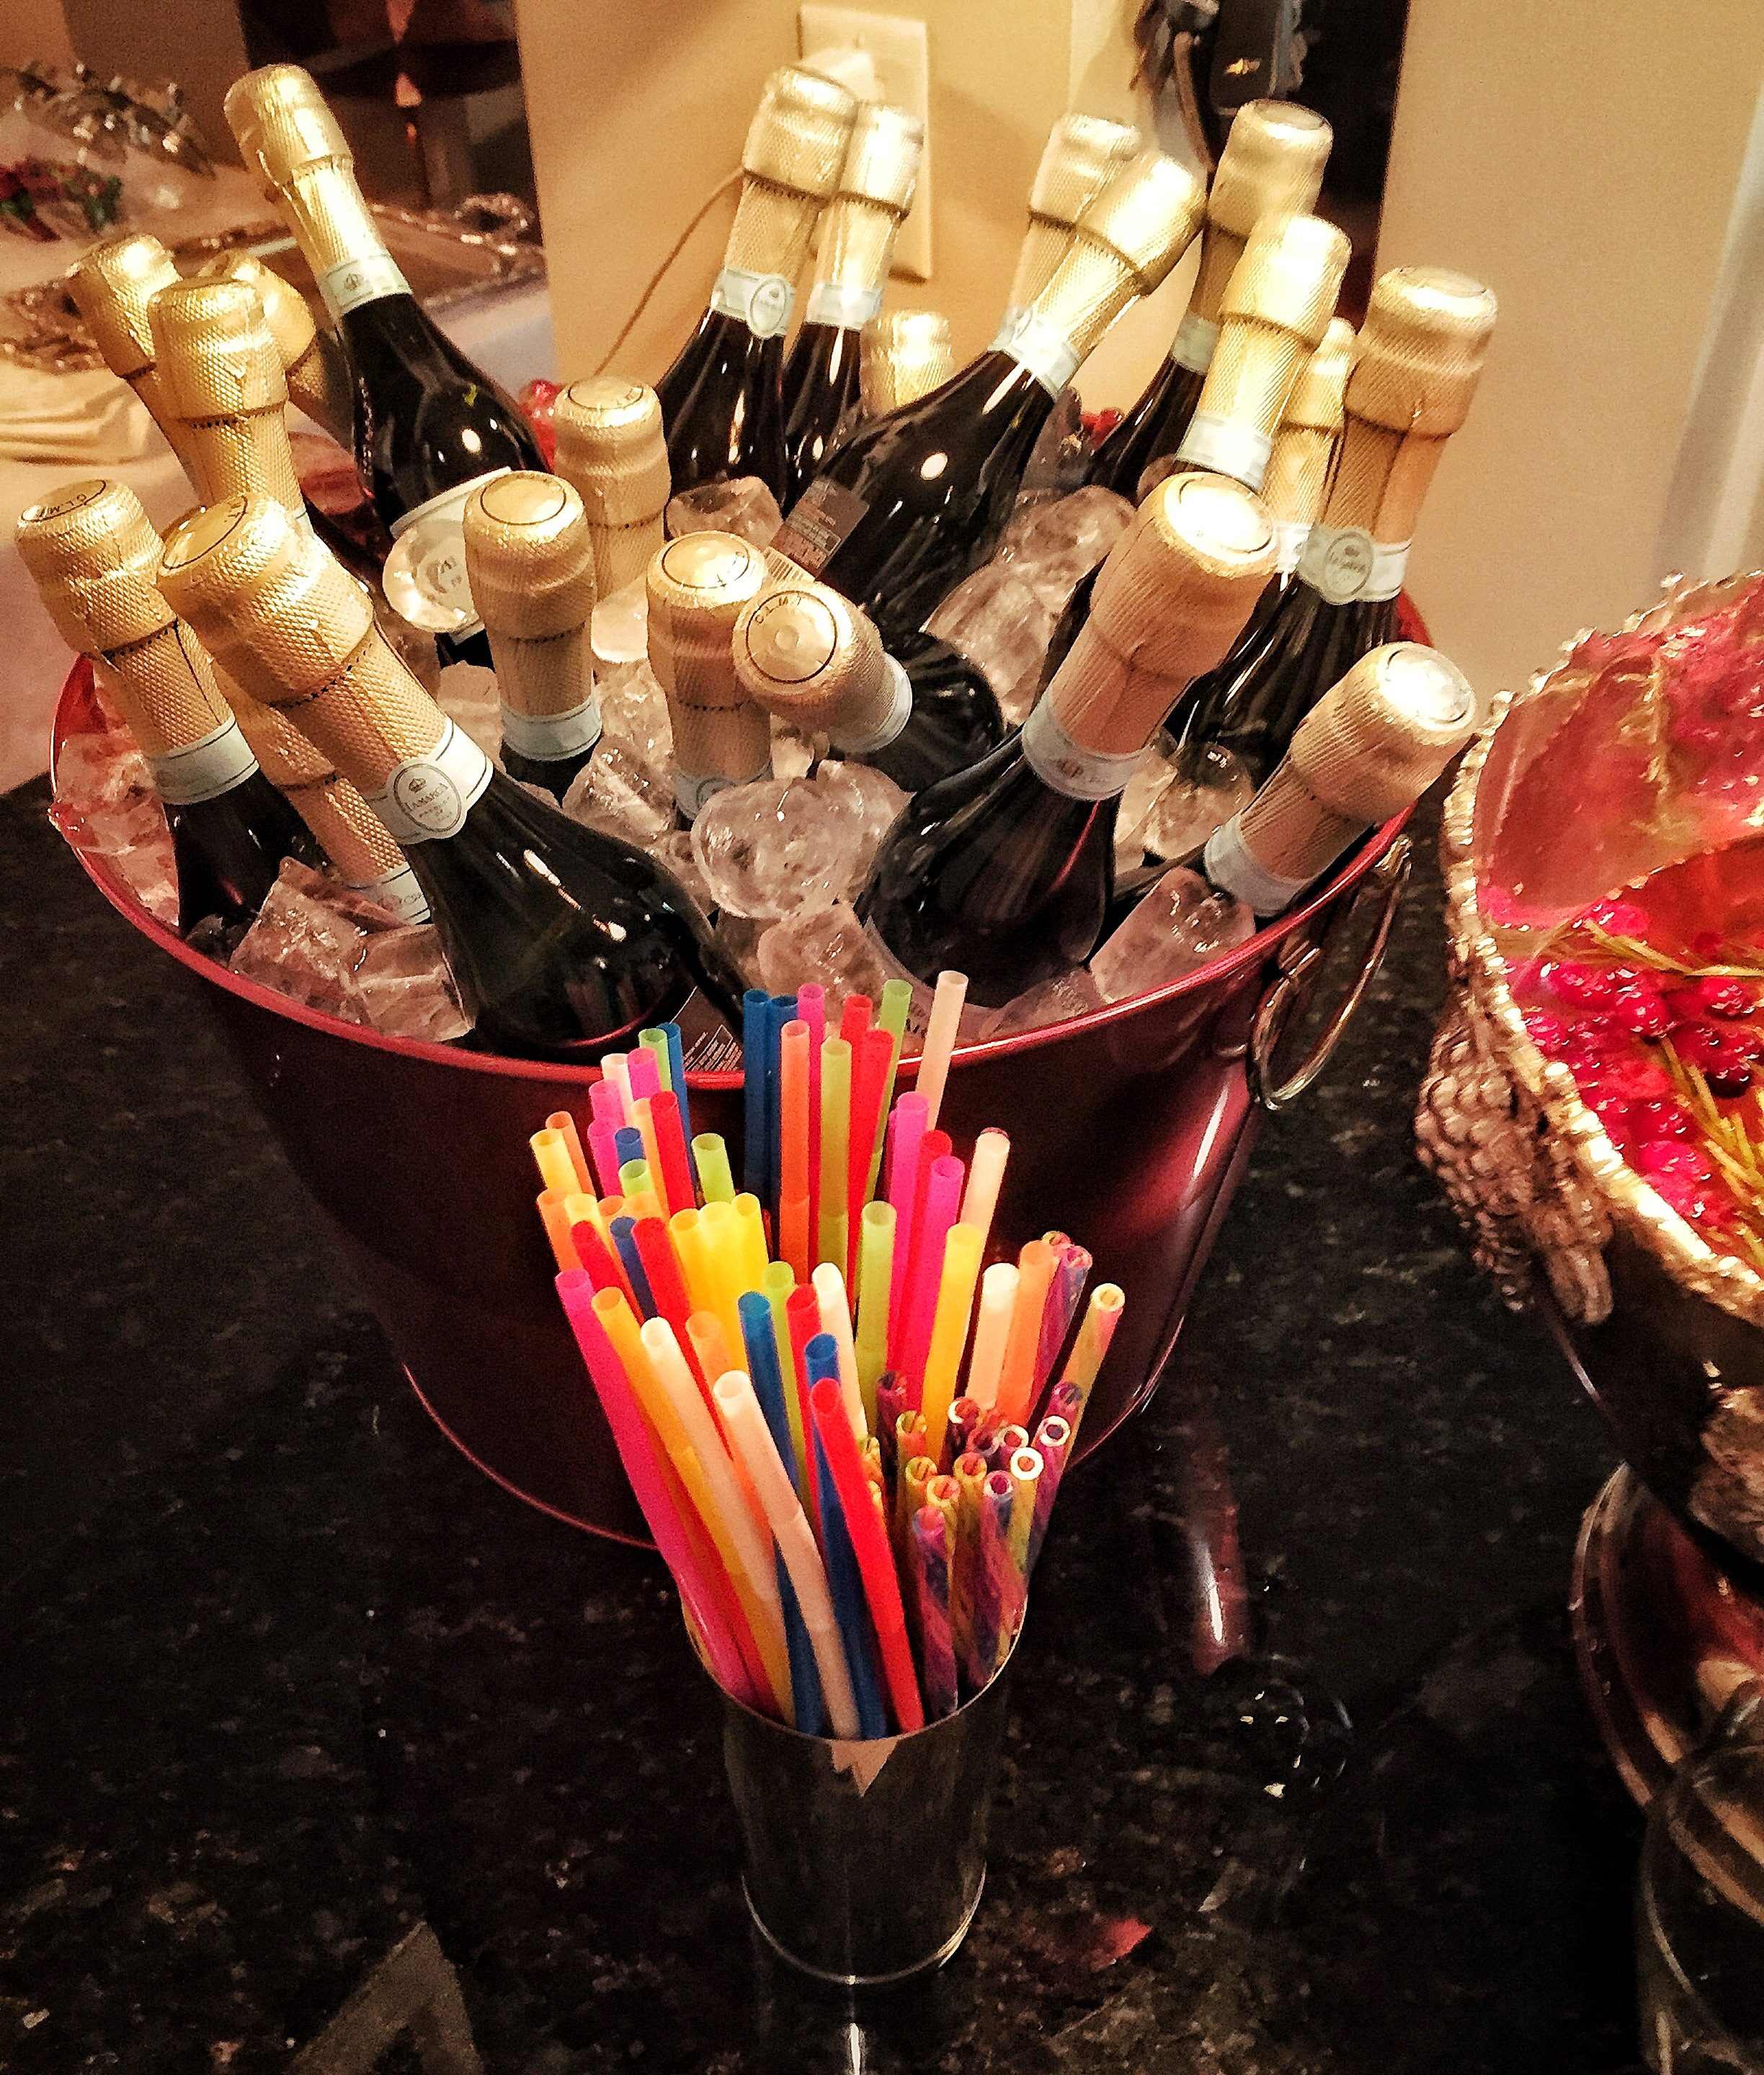 Prosecco with straws. DONE.